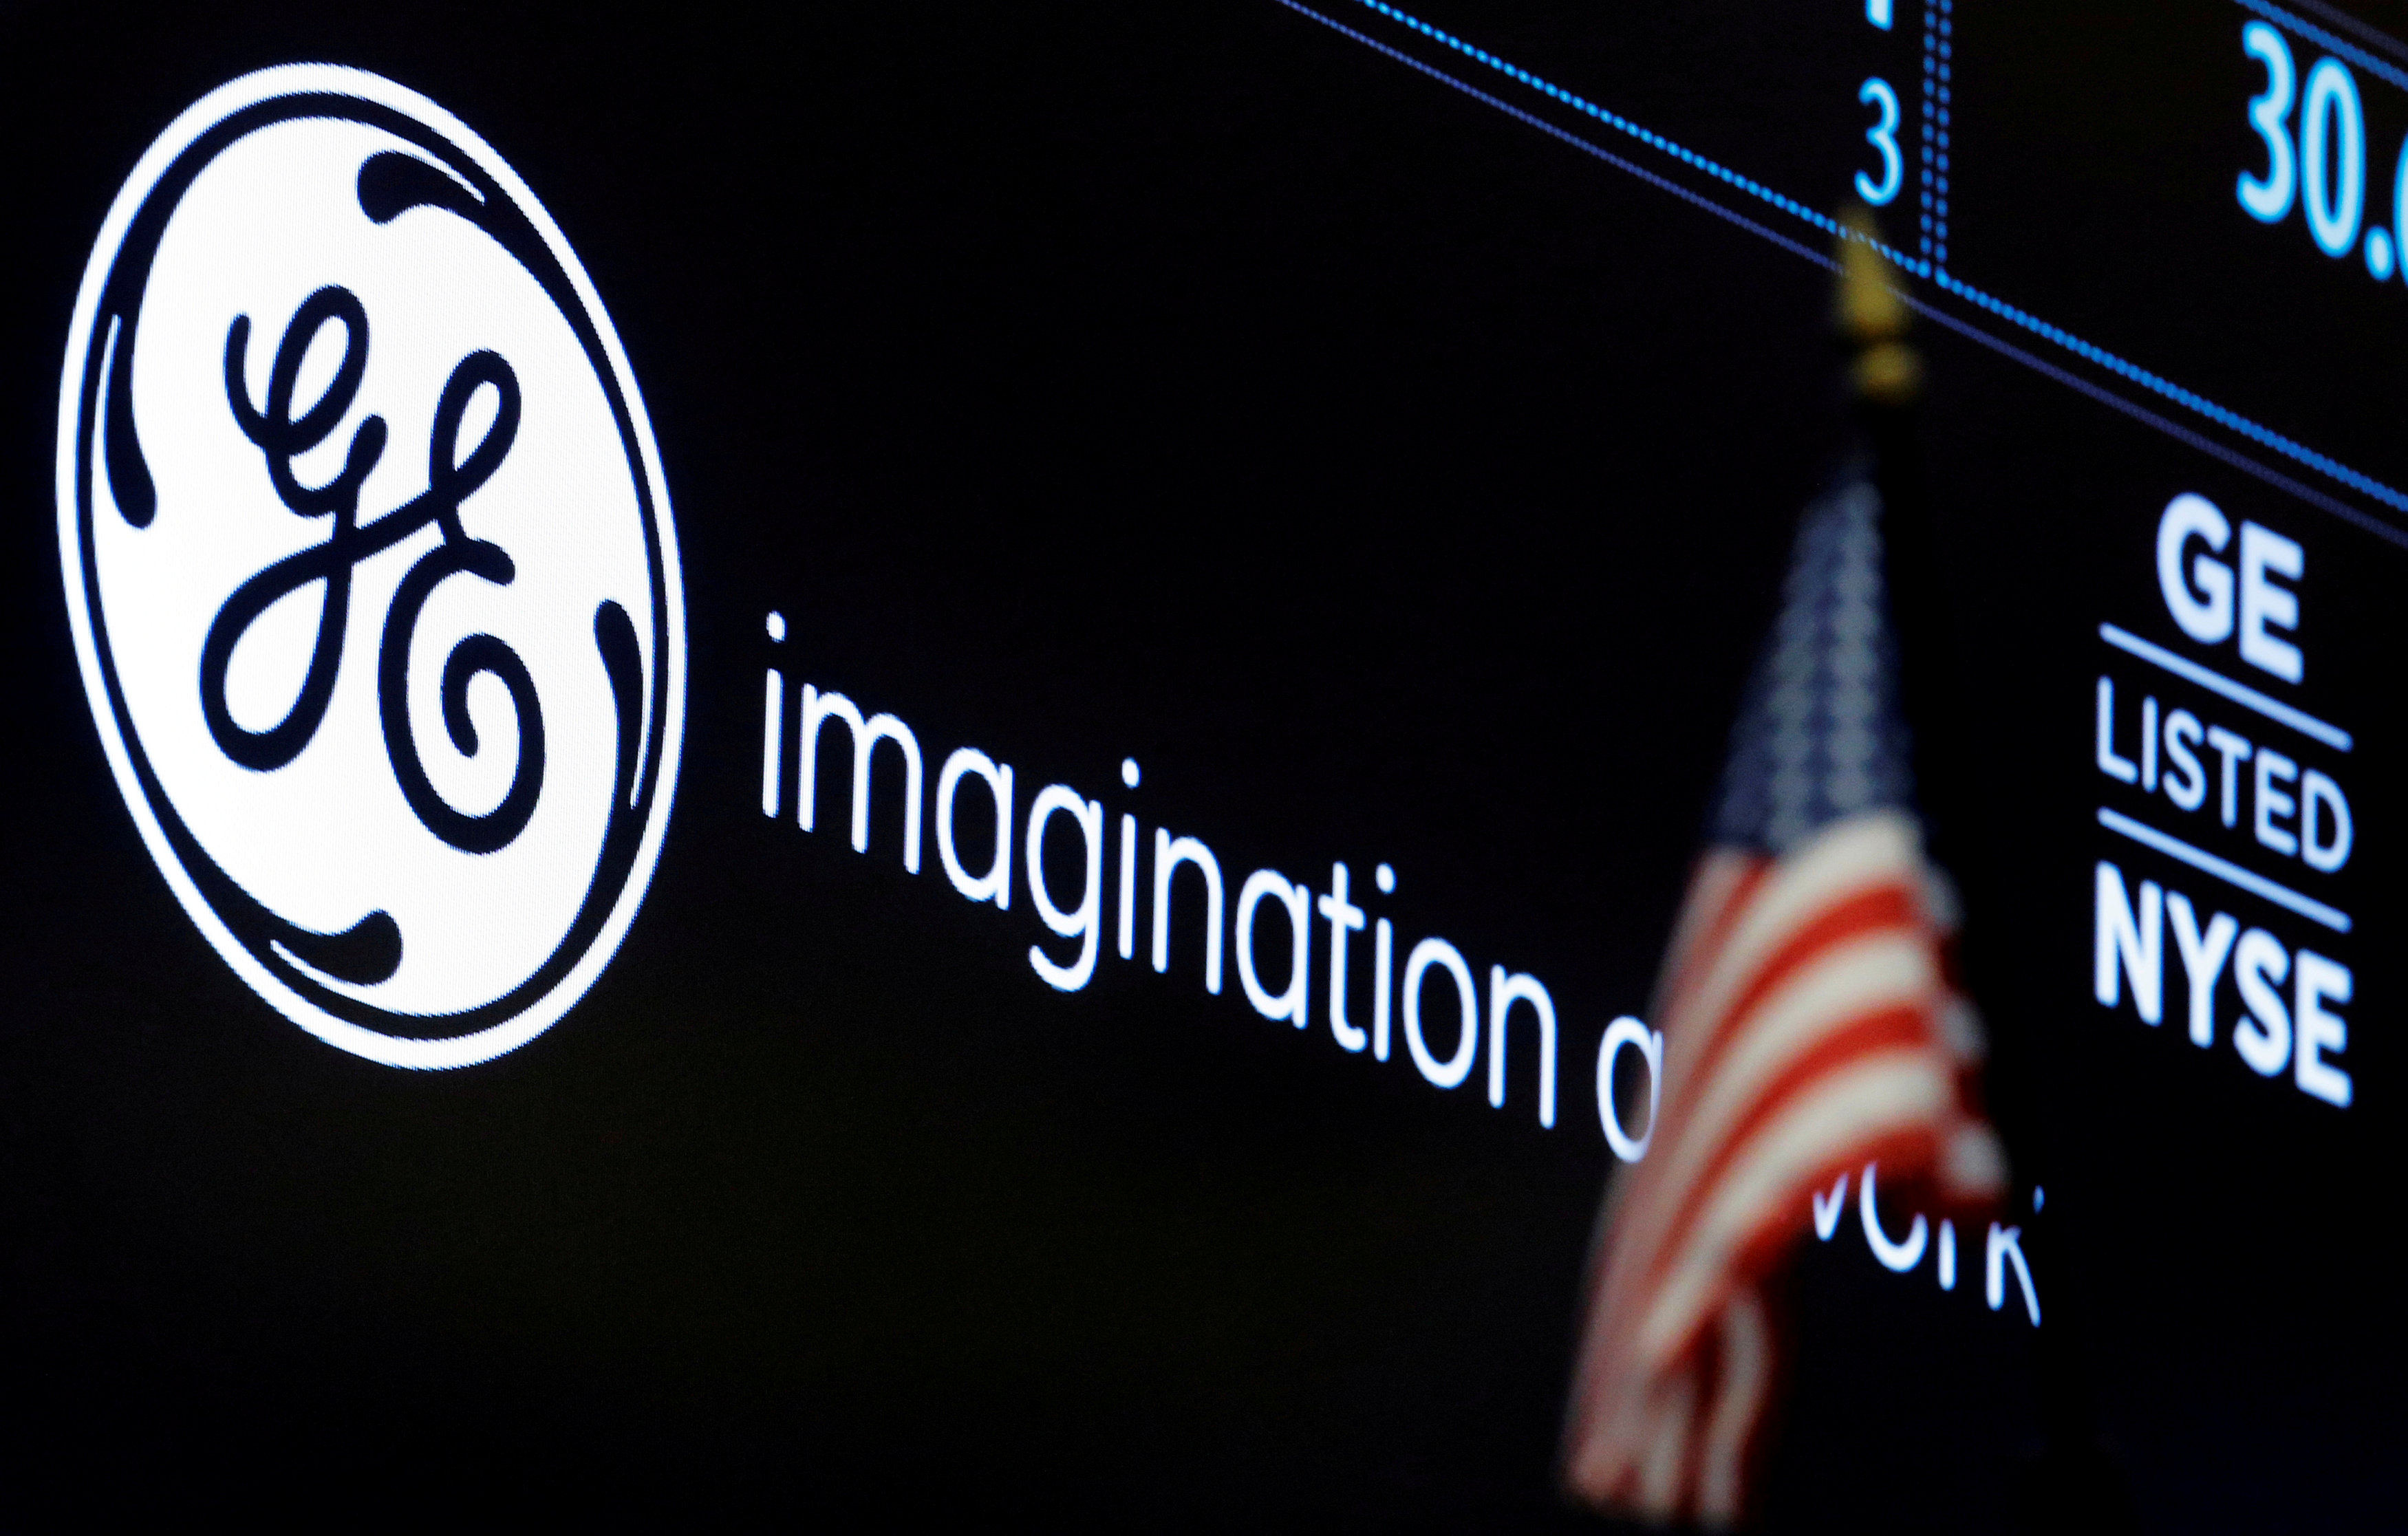 GE cutting staff ahead of new CEO's Monday overhaul: sources